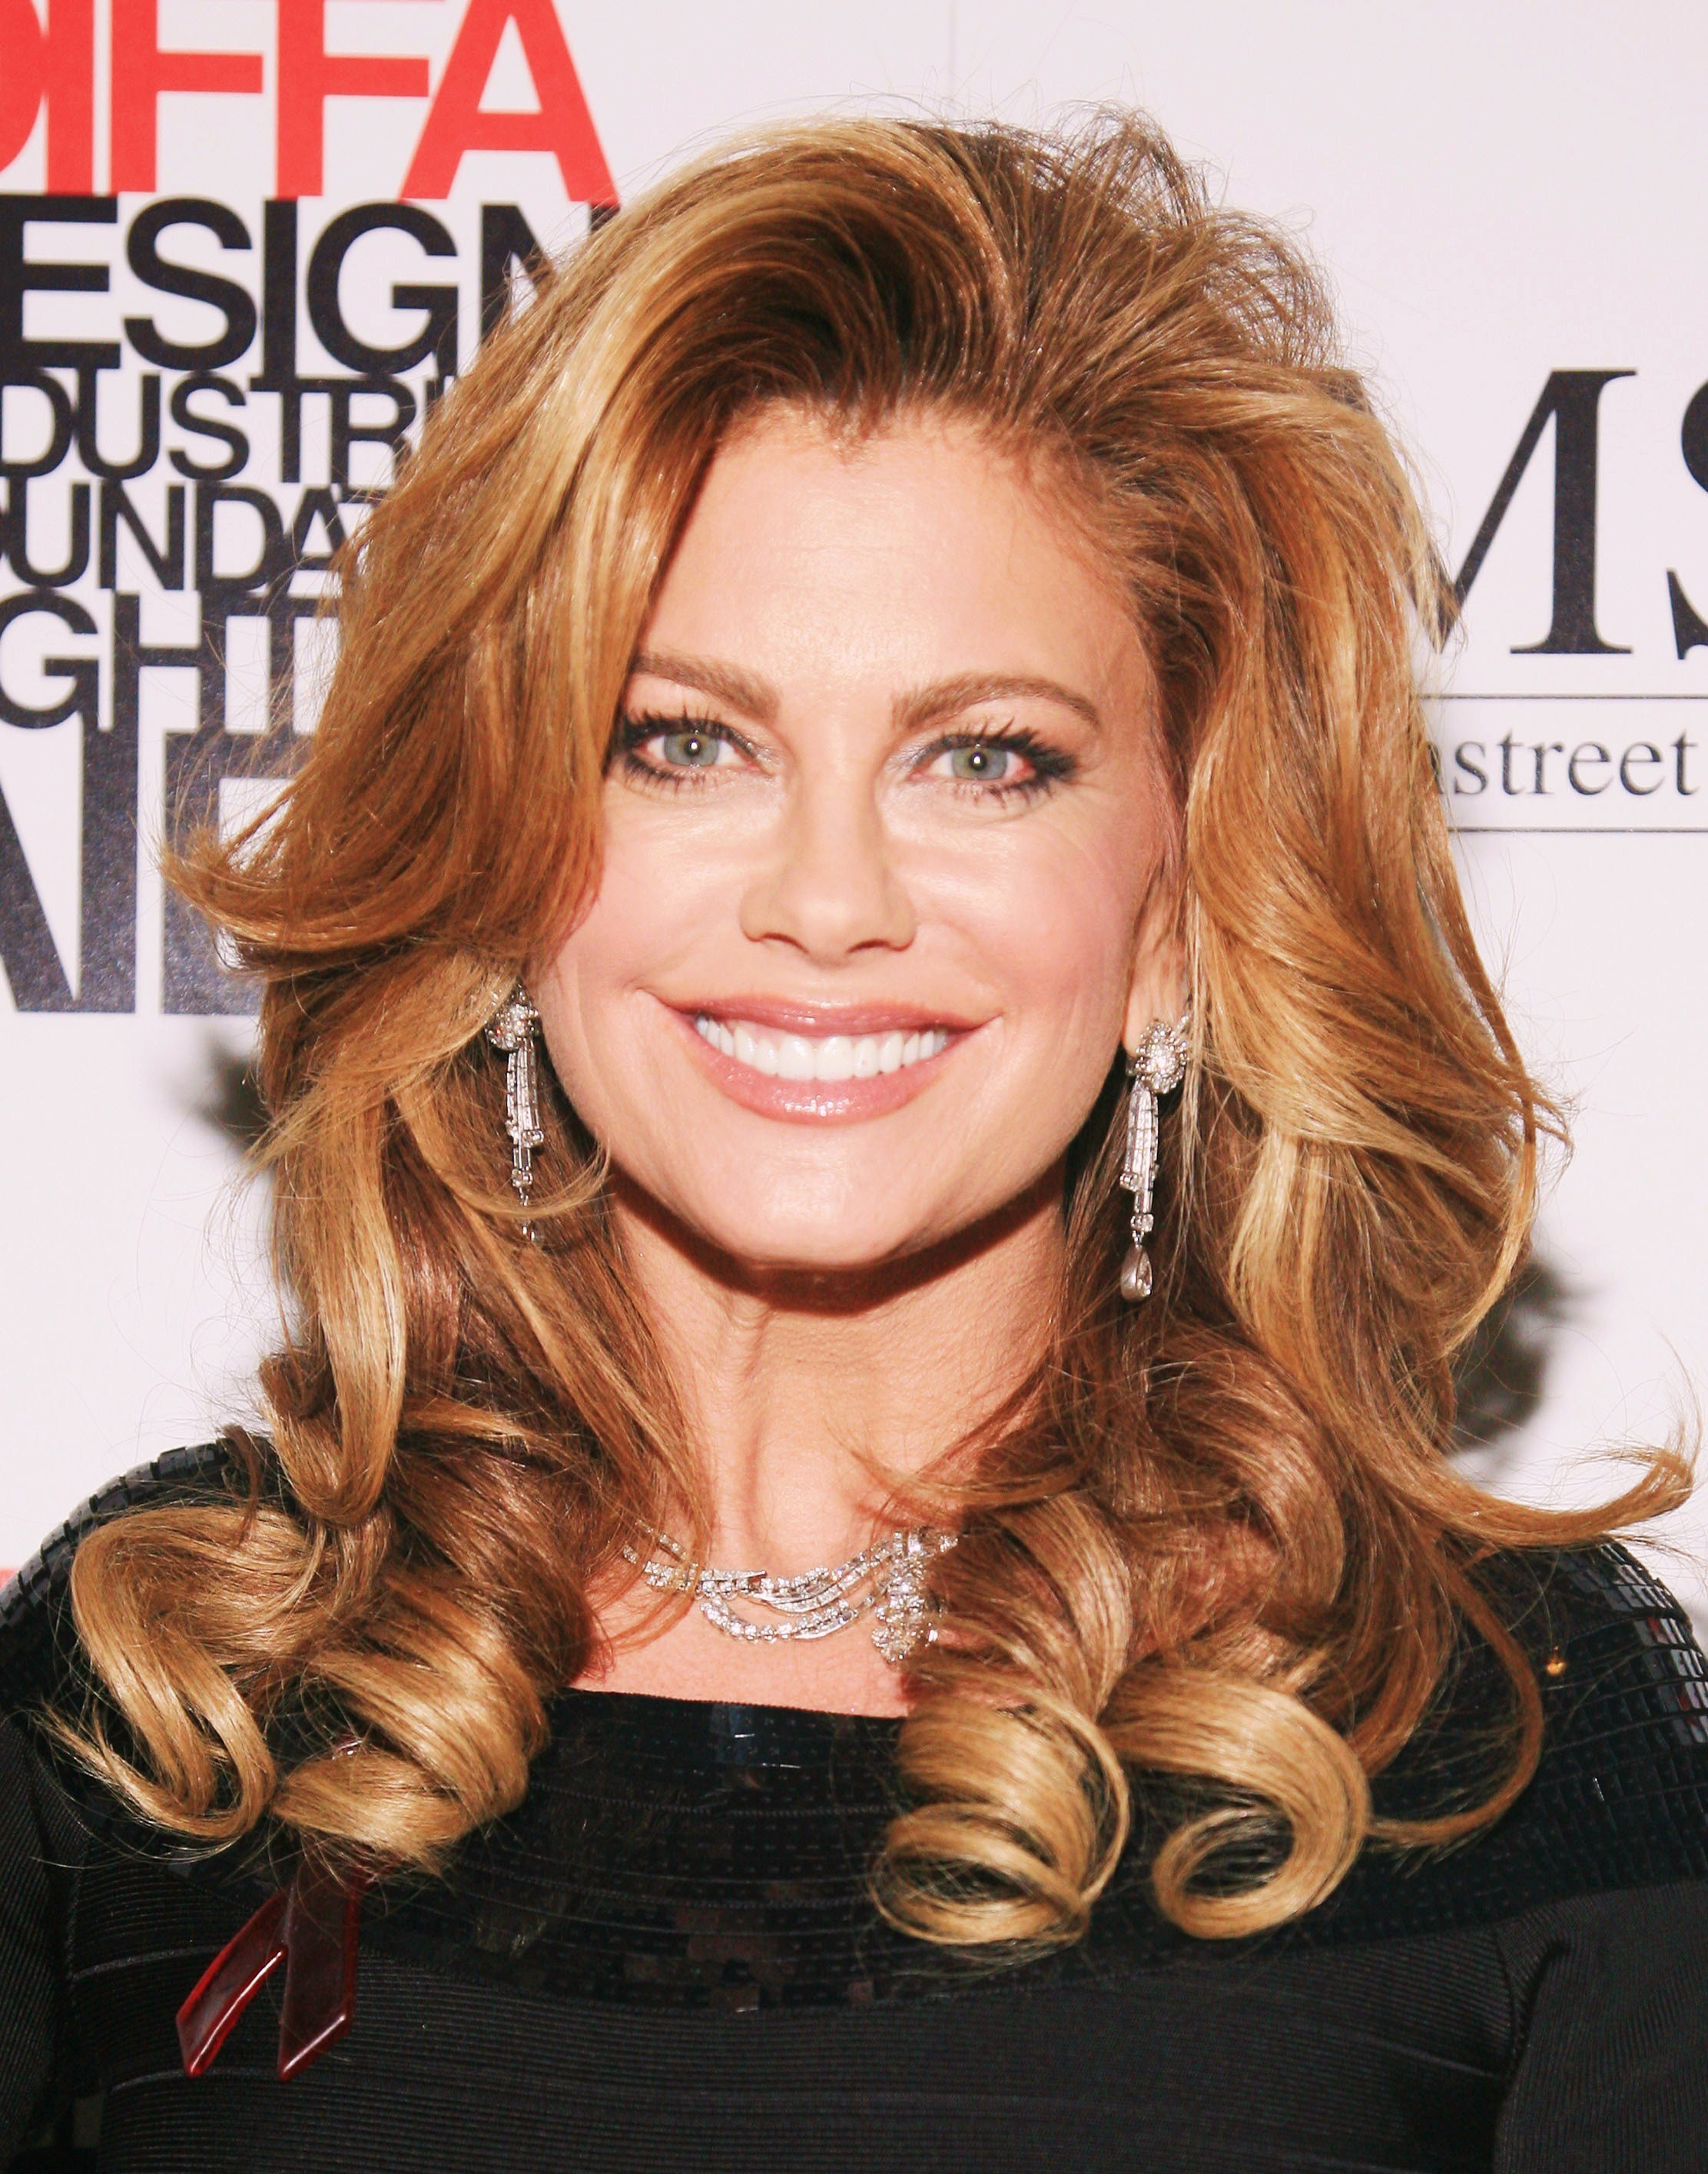 Kathy Ireland Hot Images Crazy Gallery 2223x2829